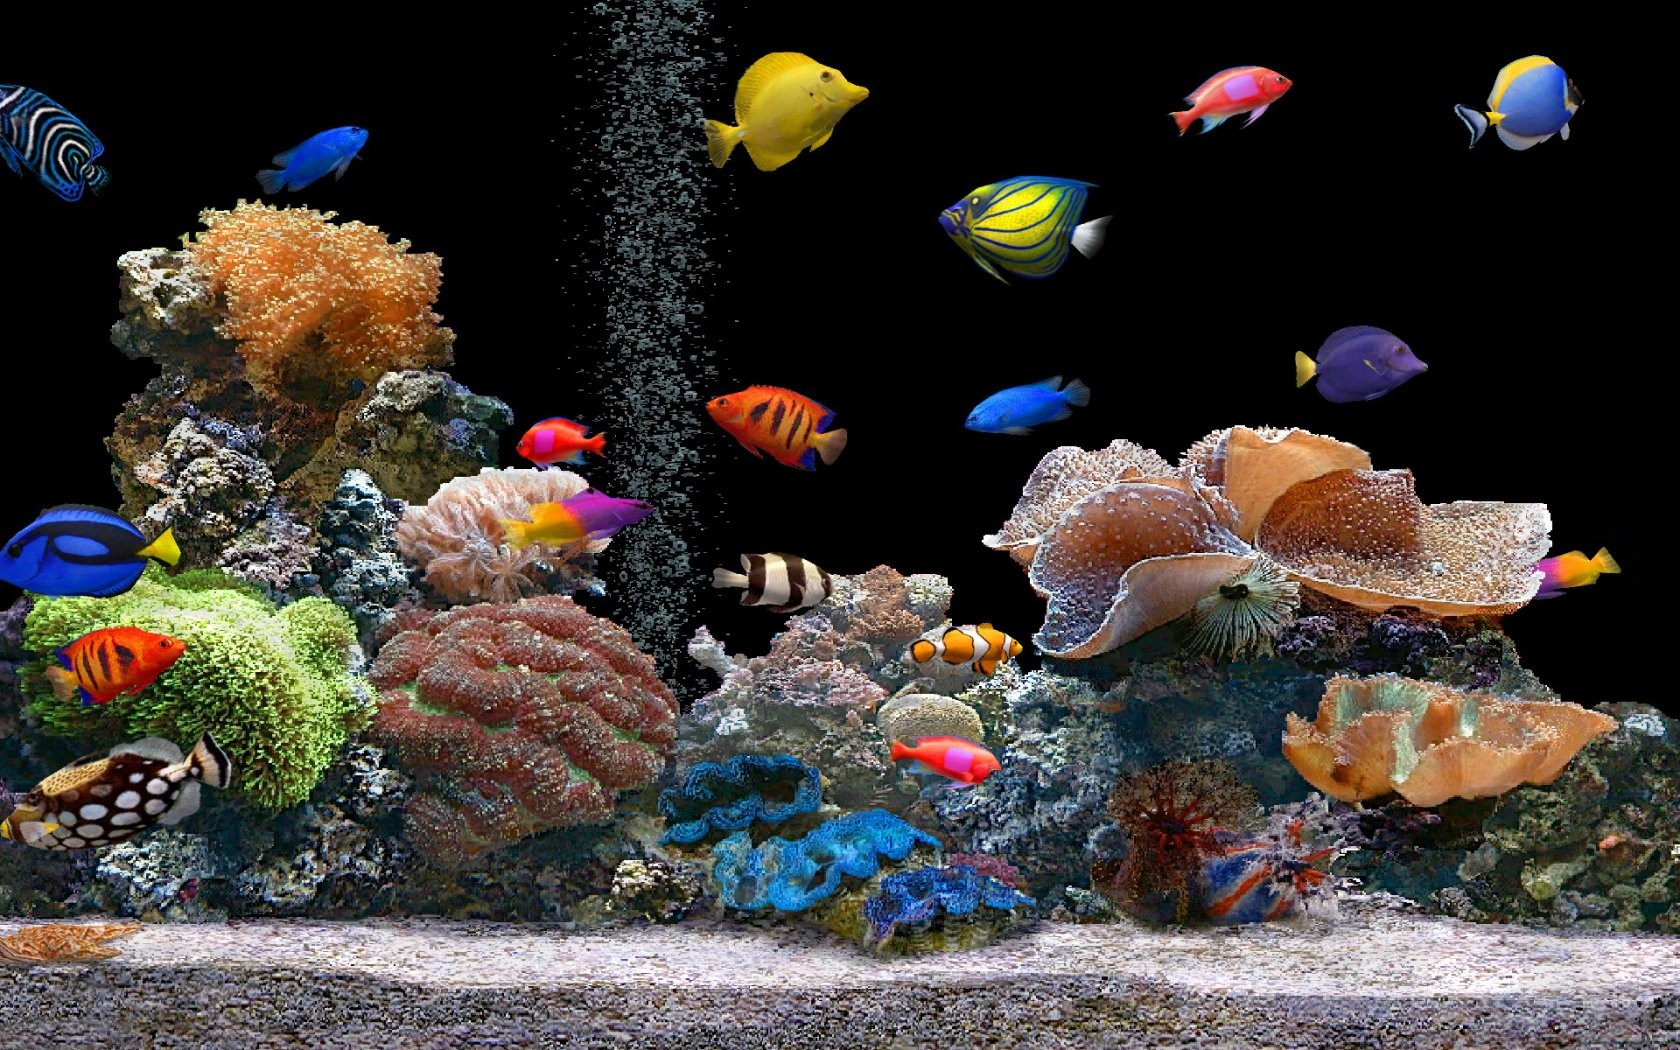 photos 1024x768 aquarium - photo #3